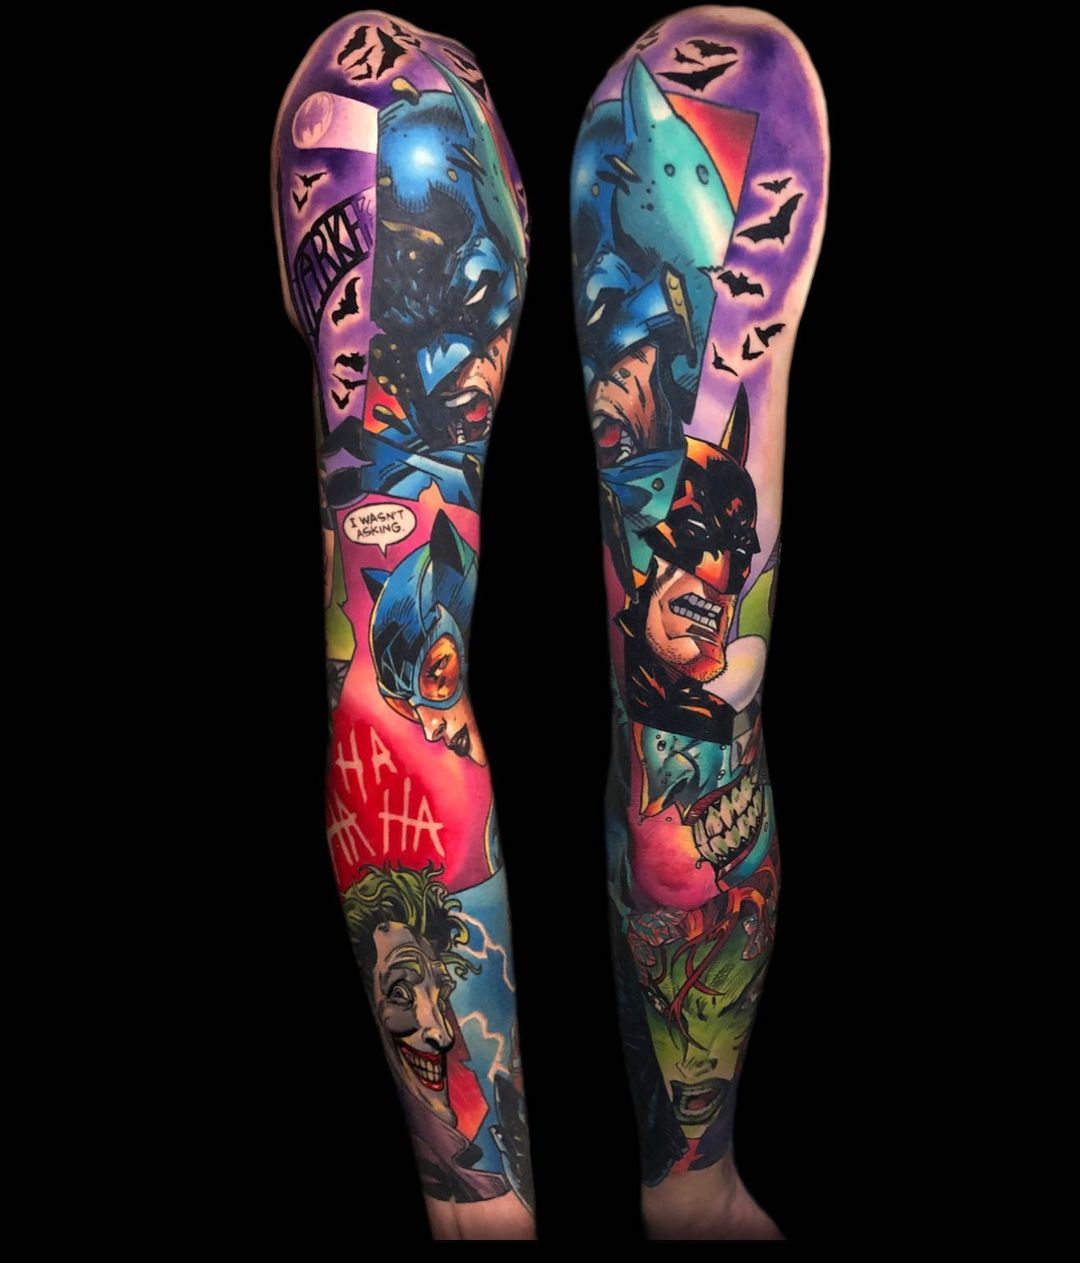 Super collection of super heroes from the movie batman - mean tattoo sleeves